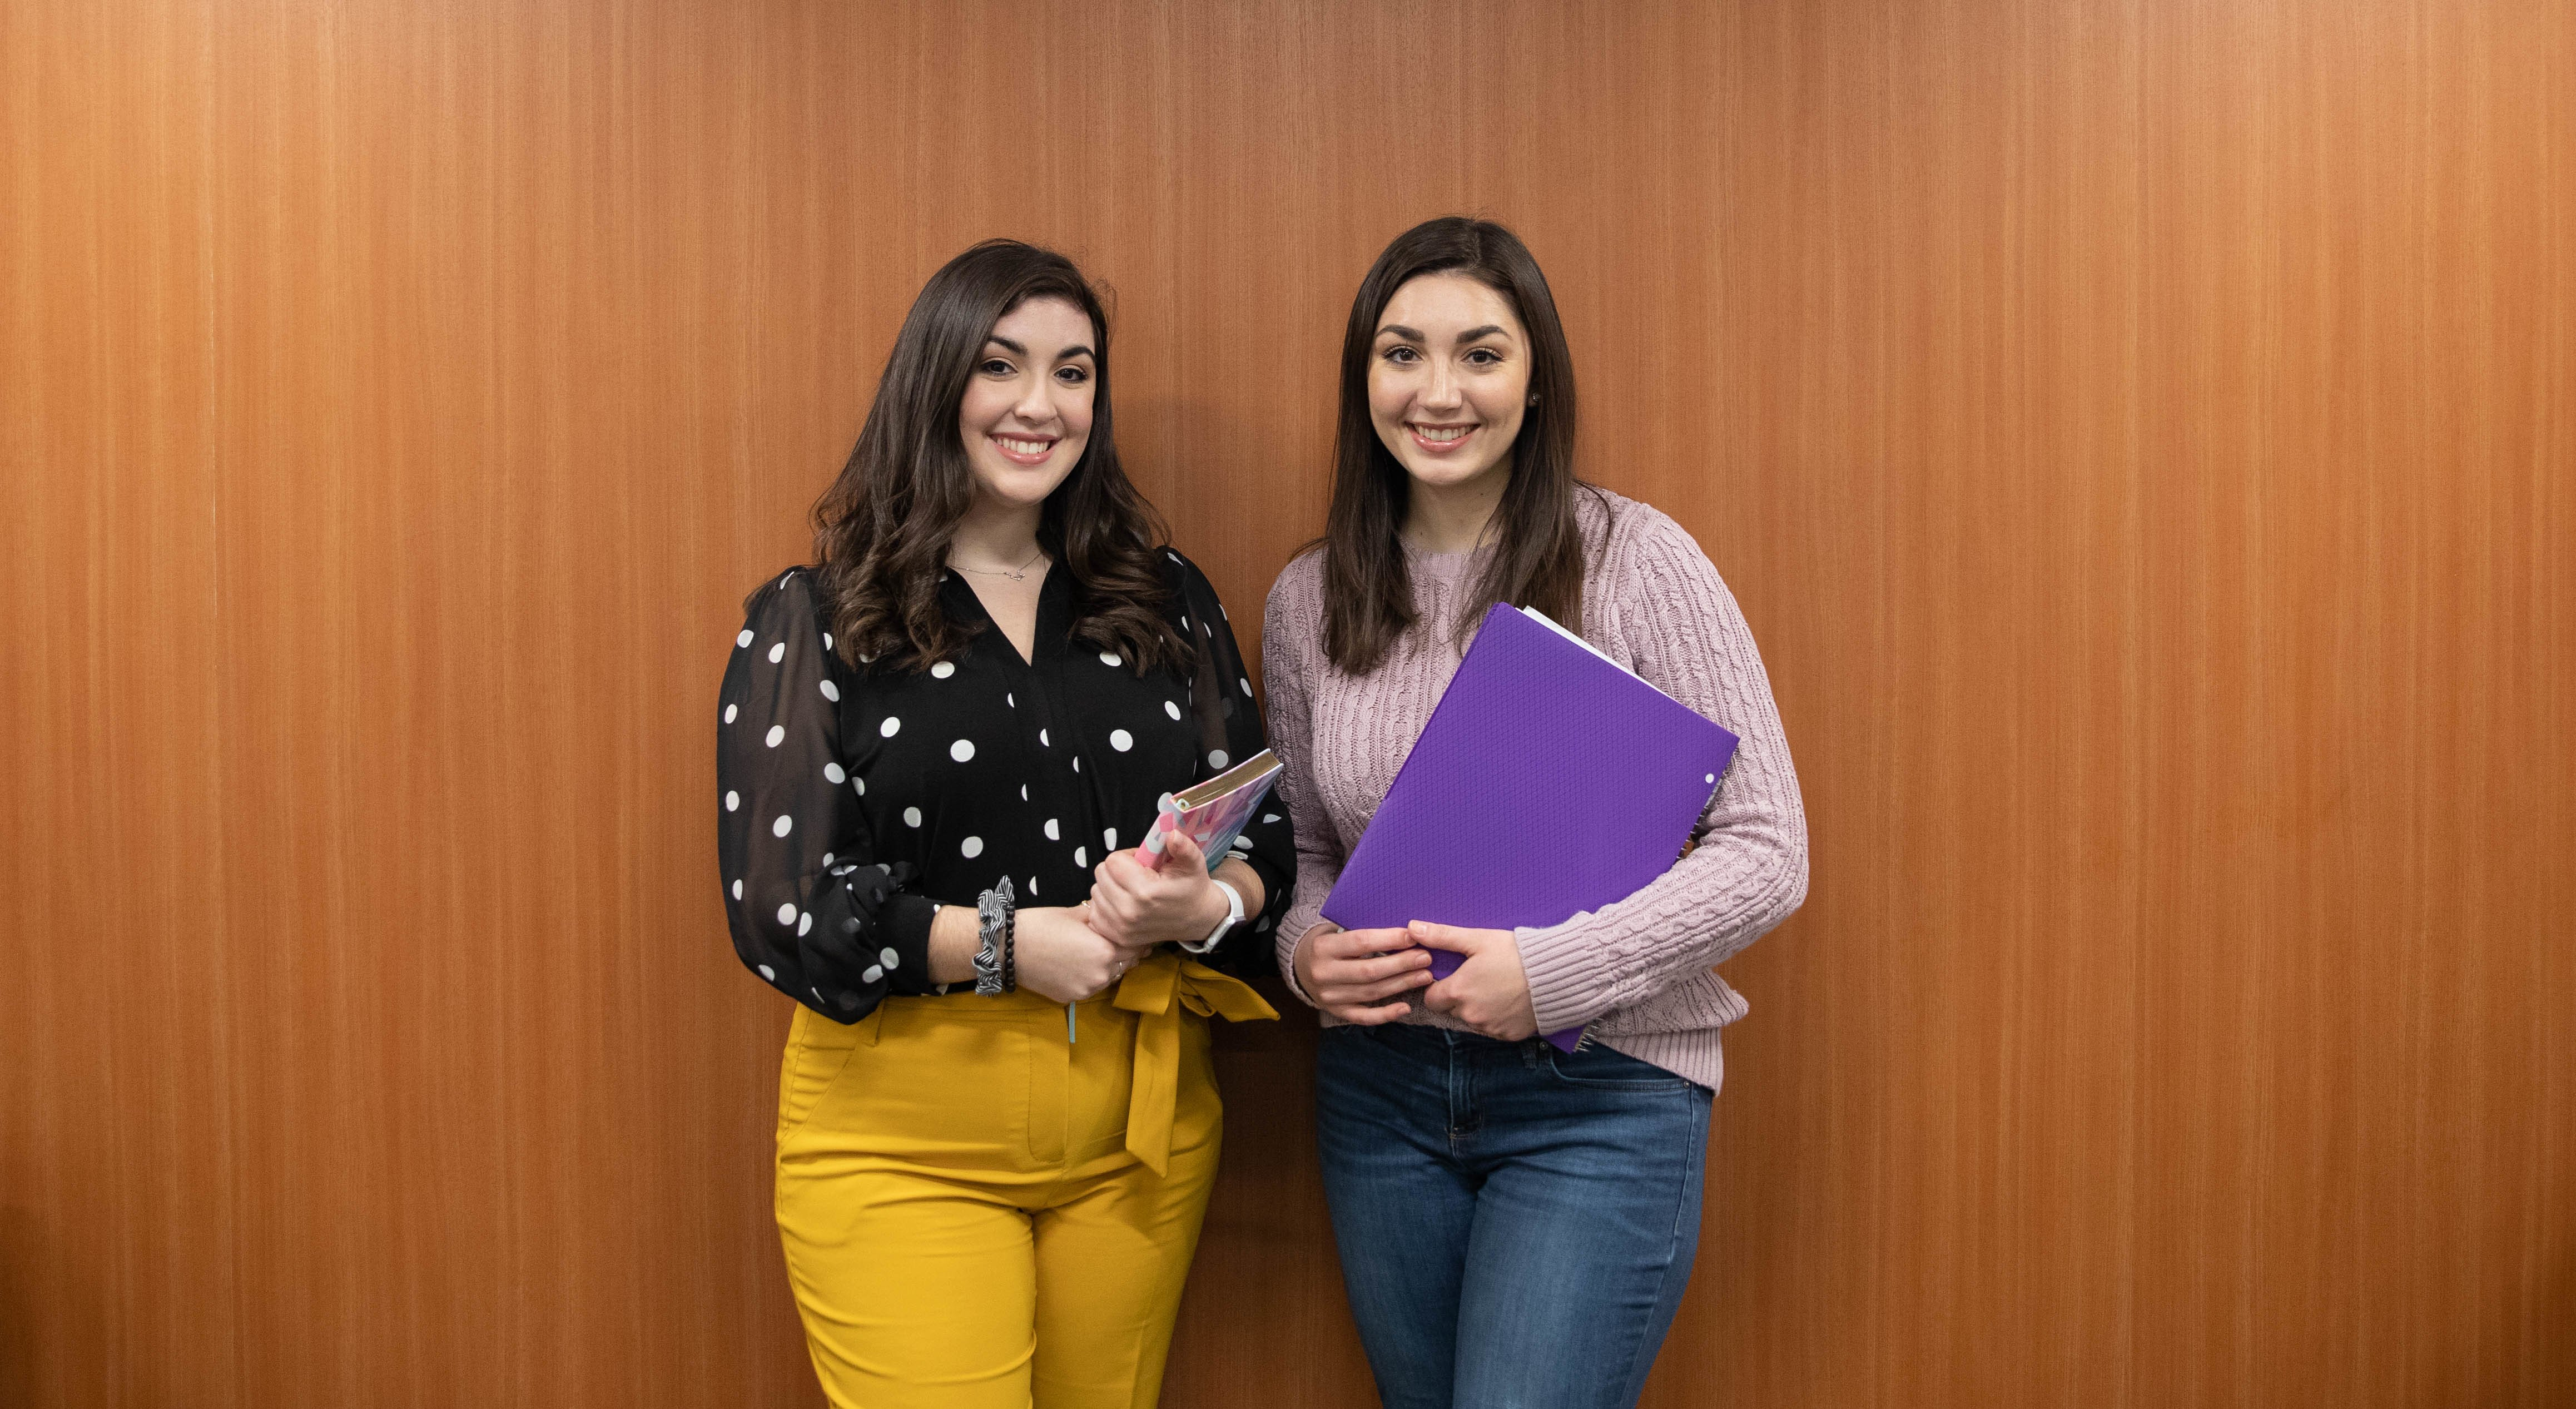 Sophia and Madison pose with school supplies in front of a wooden background.